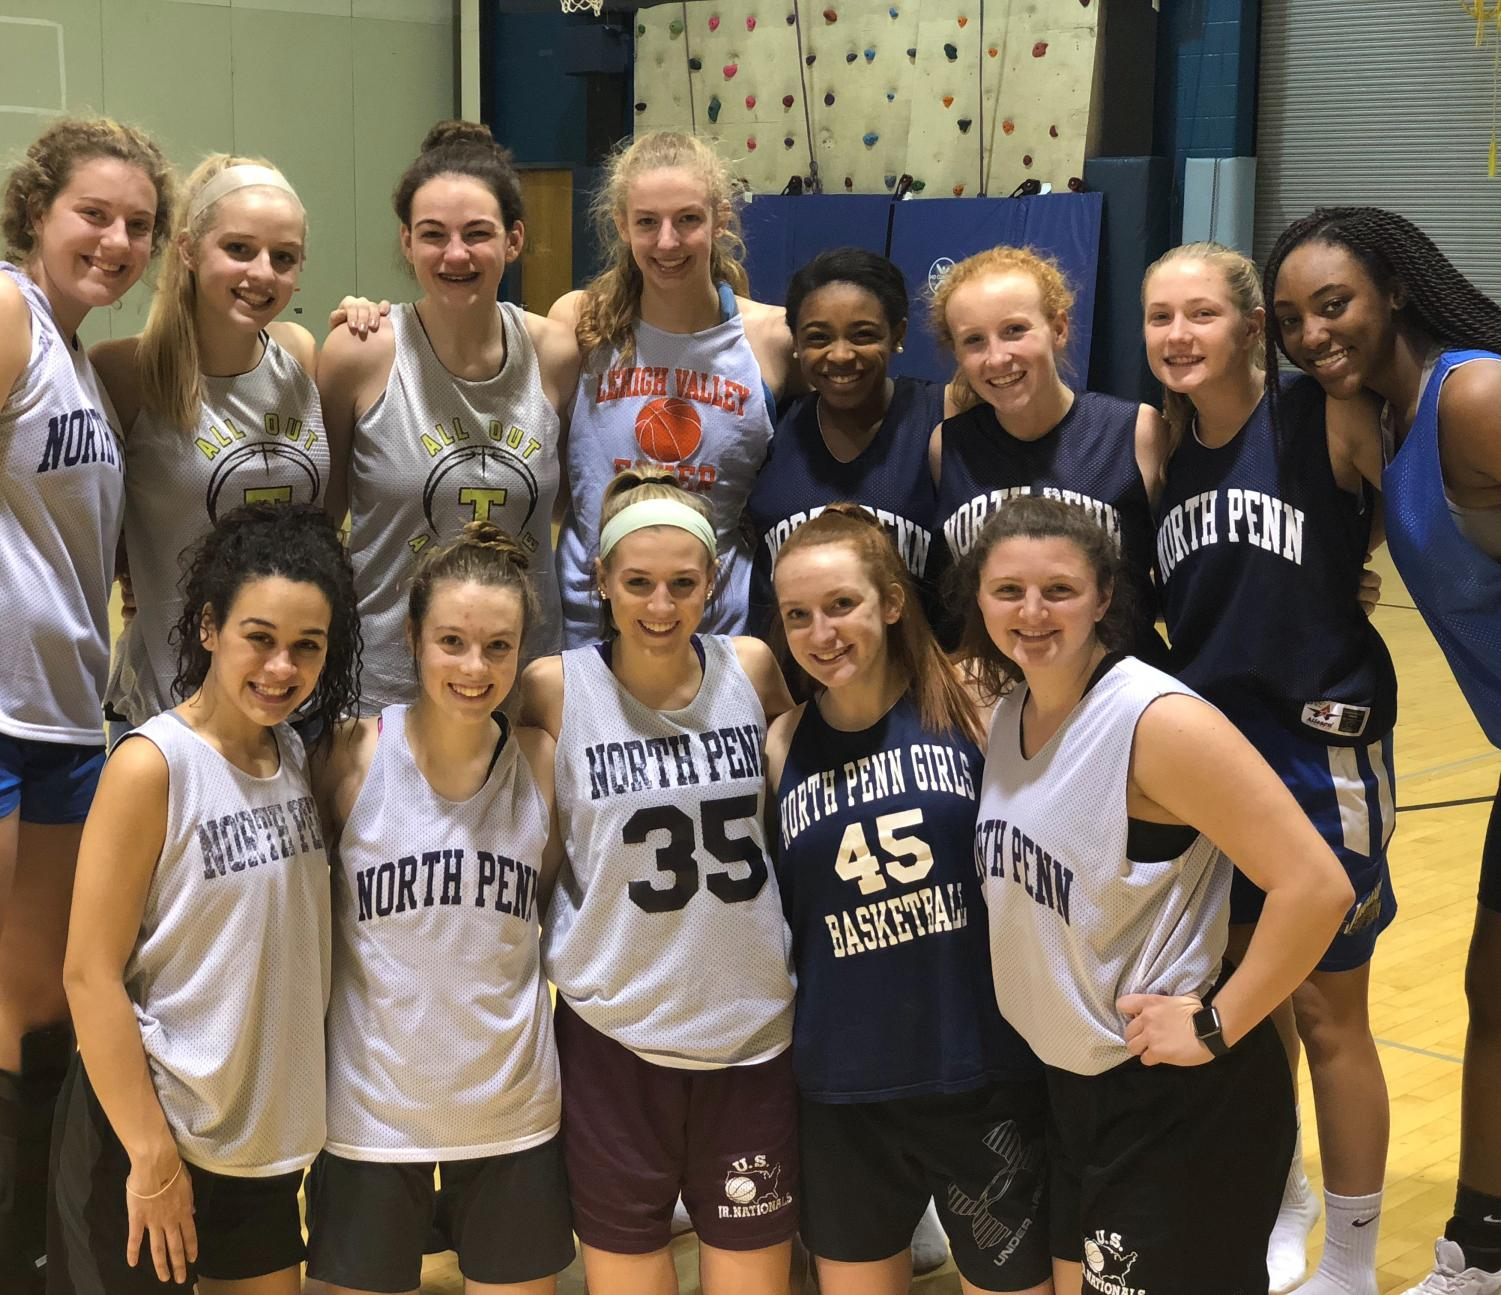 WINTER SPORTS PREVIEW- The 2017 North Penn Girls Basketball team is getting ready for a new season after losing key players from last year.